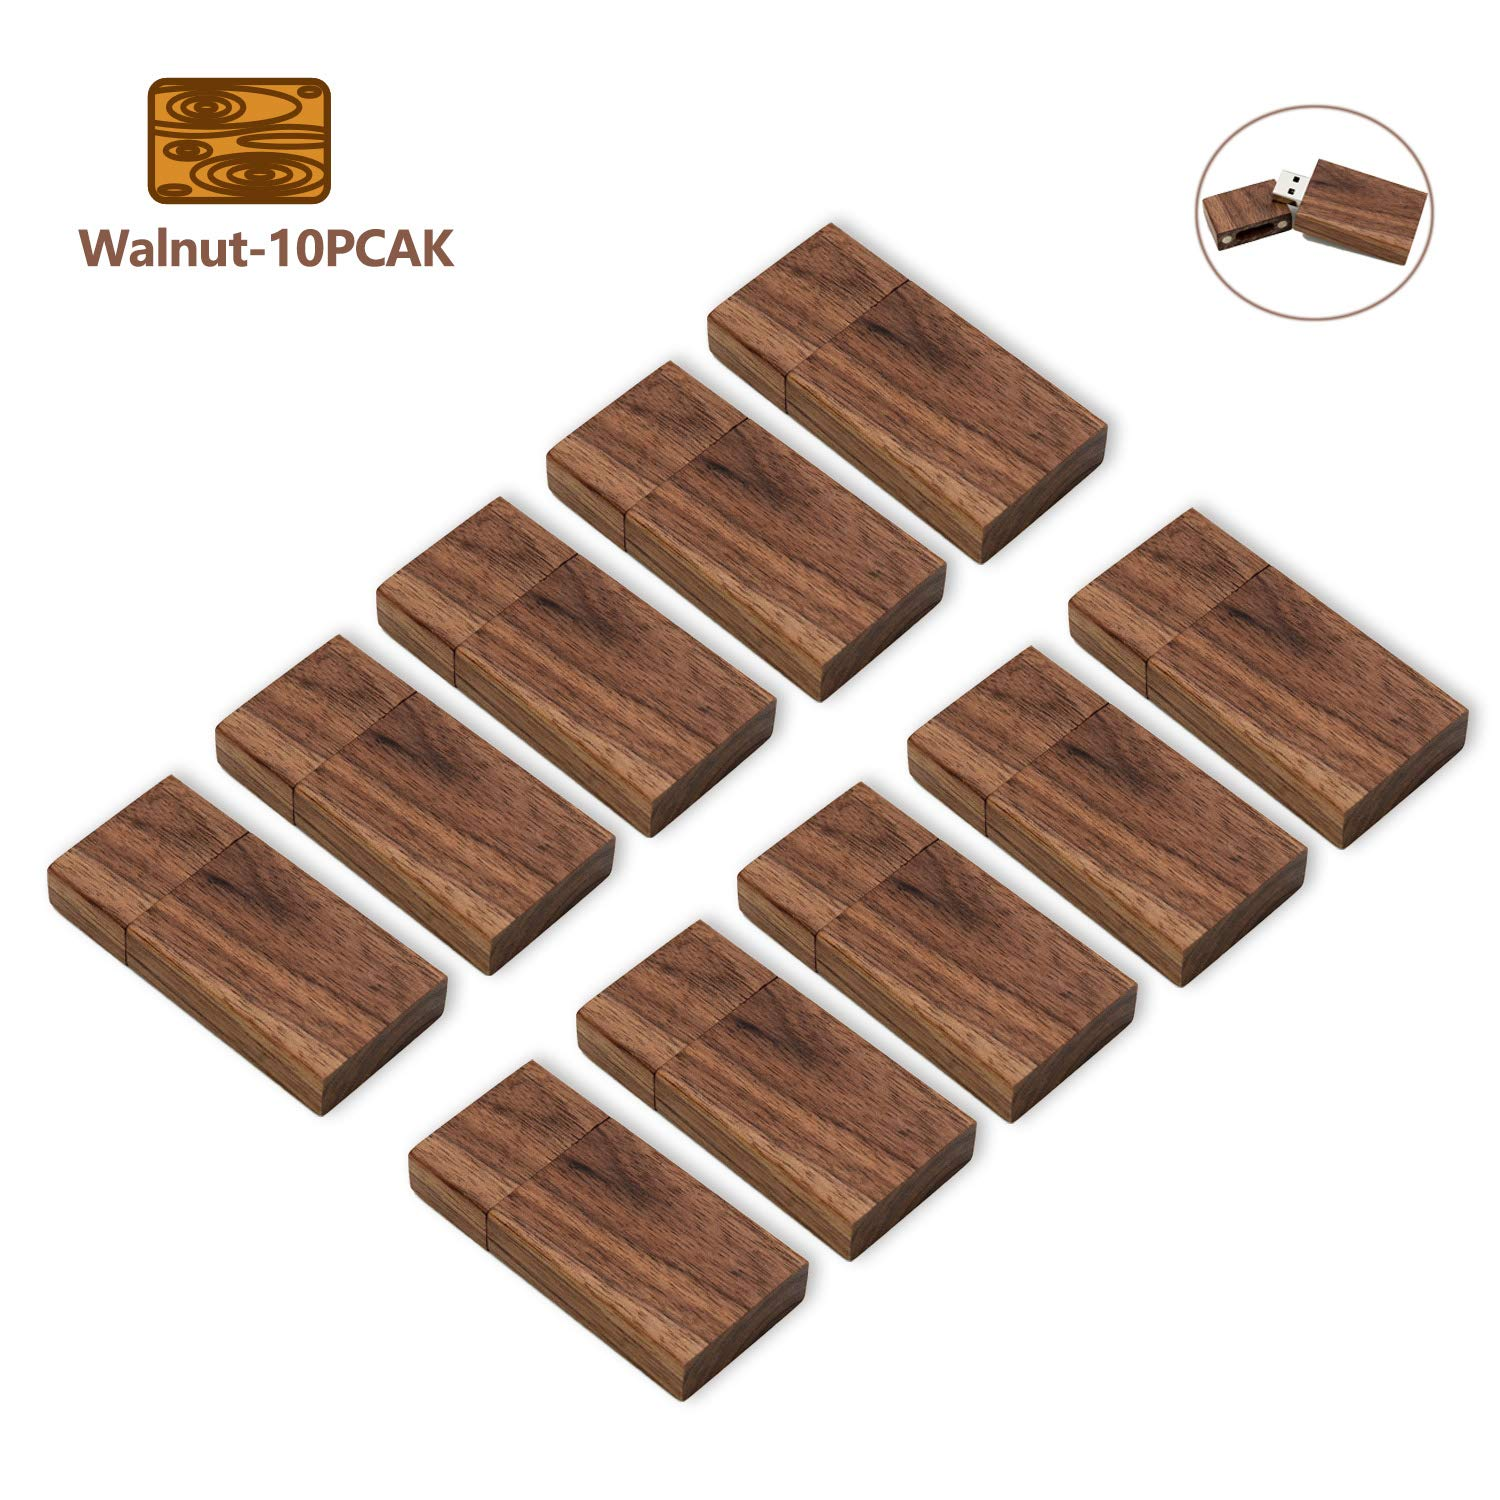 8GB USB Flash Drive 10 Pack, USB Drives 8 GB 10 PCS Wood Memory Stick JBOS Thumb Drives Gig Stick USB2.0 Pen Drive for Fold Digital Date Storage, Zip Drive, Jump Drive, USB Stick (Wooden Walnut)